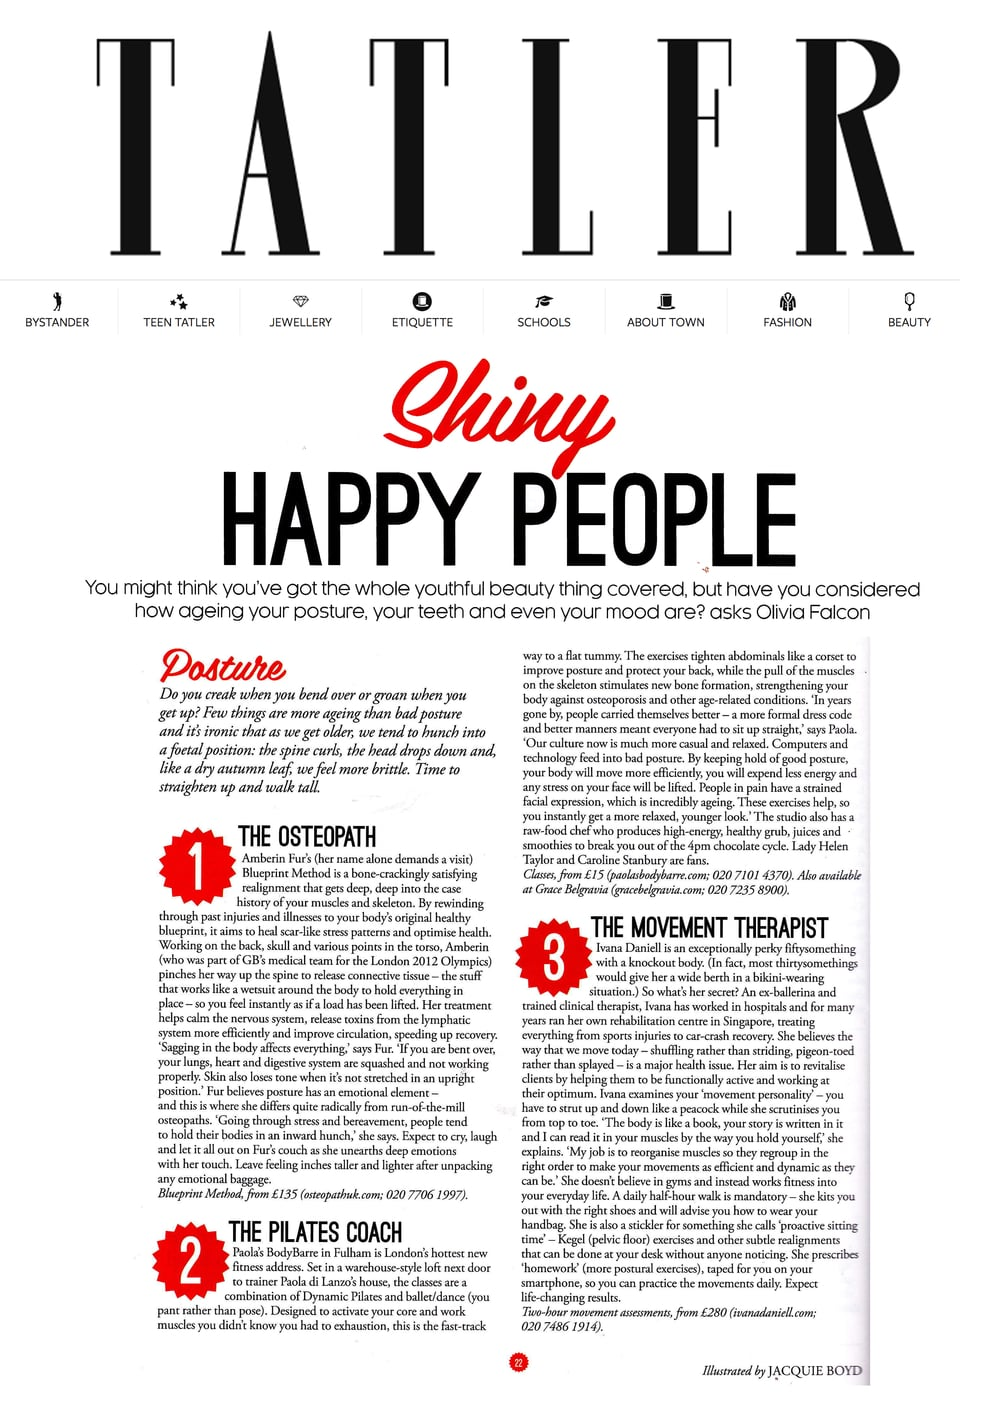 Tatler Shiny Happy People.jpg